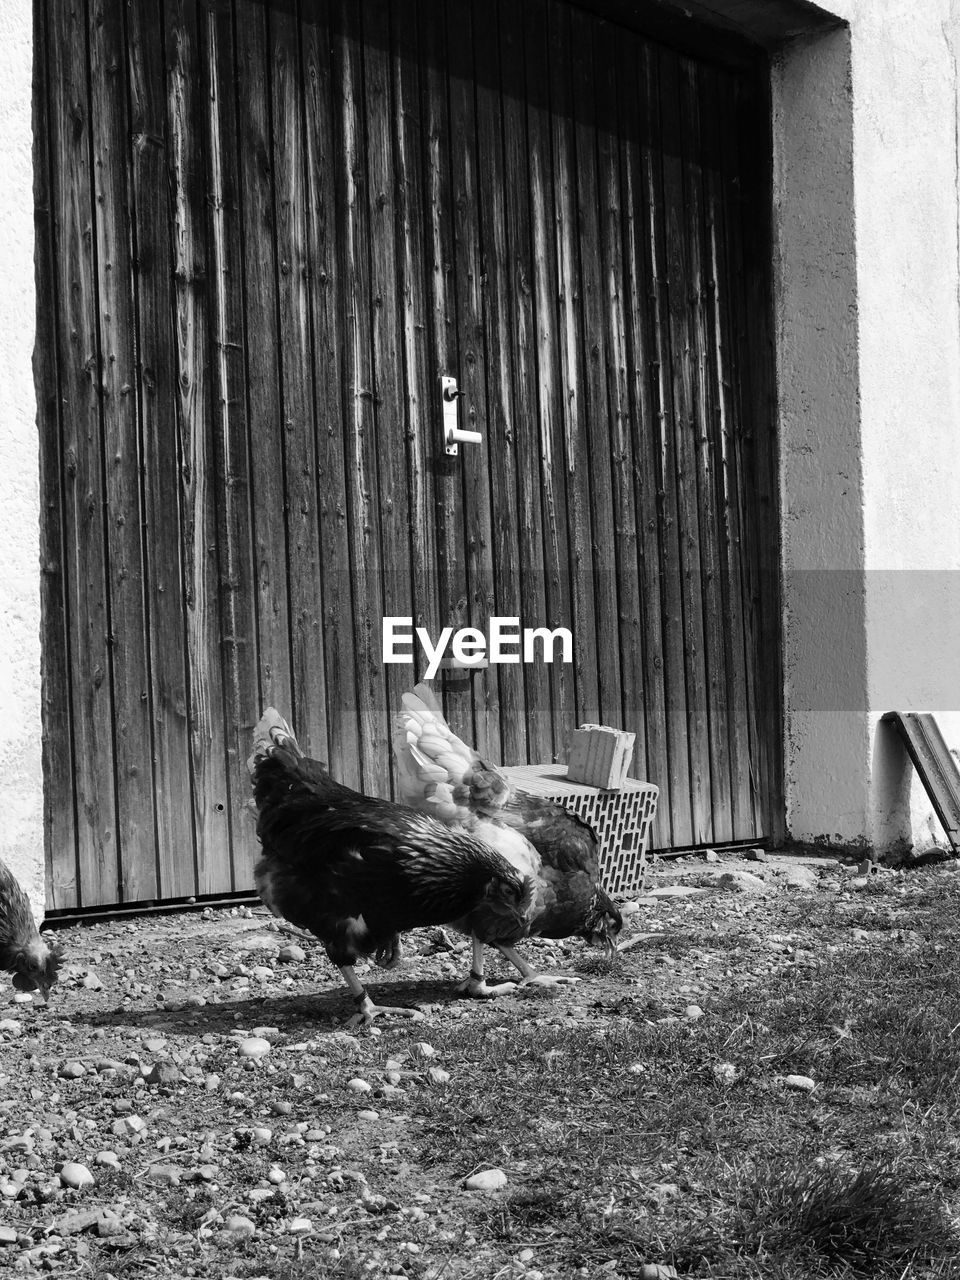 animal themes, domestic animals, door, one animal, day, outdoors, no people, chicken - bird, built structure, building exterior, livestock, bird, wood - material, mammal, architecture, pets, nature